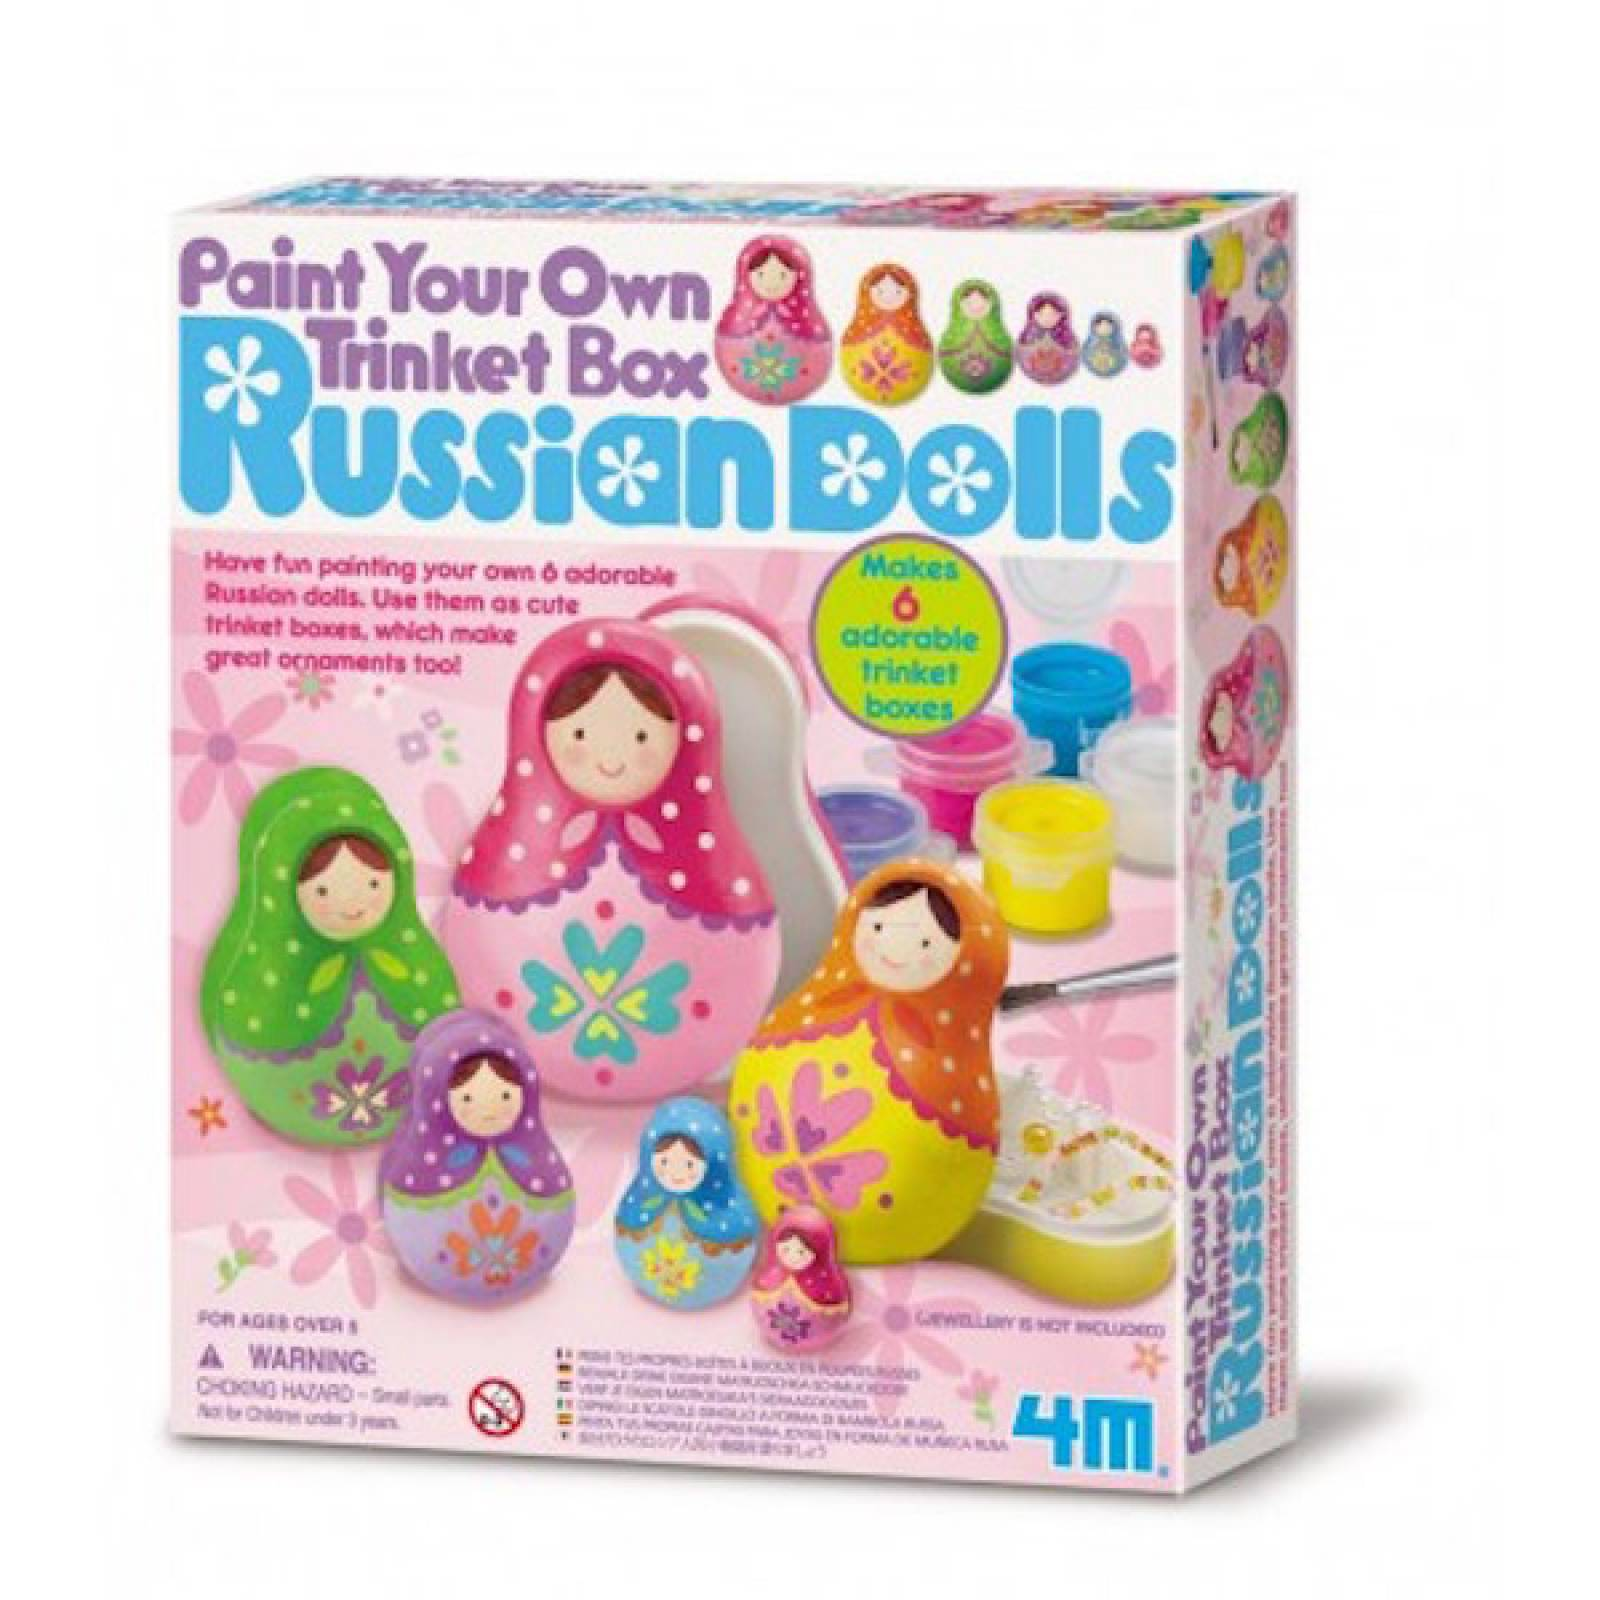 Paint Your Own Trinket Box Russian Dolls 8+